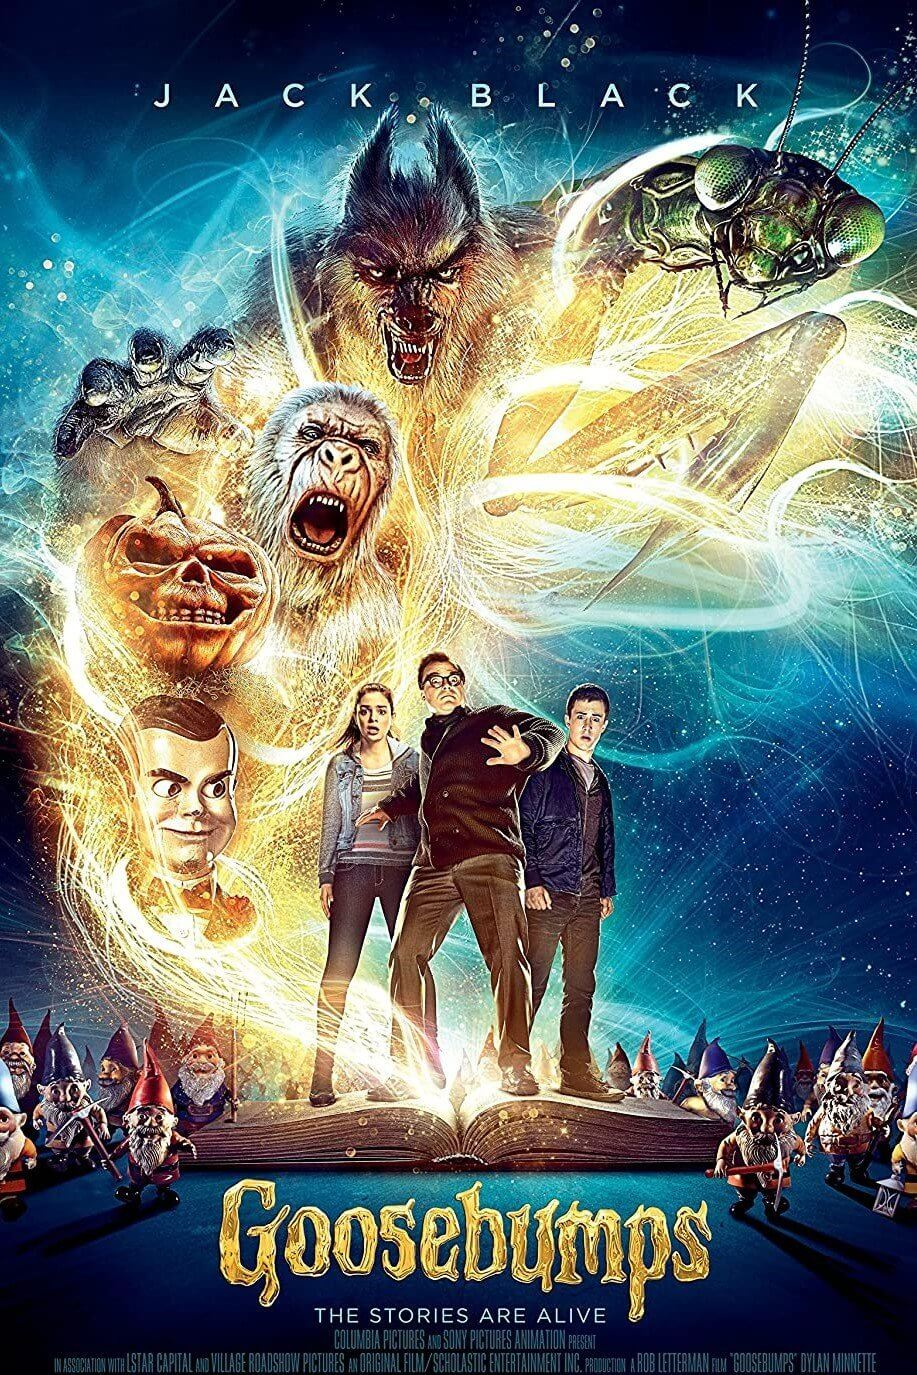 Goosebumps | HD Movies Anywhere Code Ports to Vudu, iTunes - Movie Sometimes